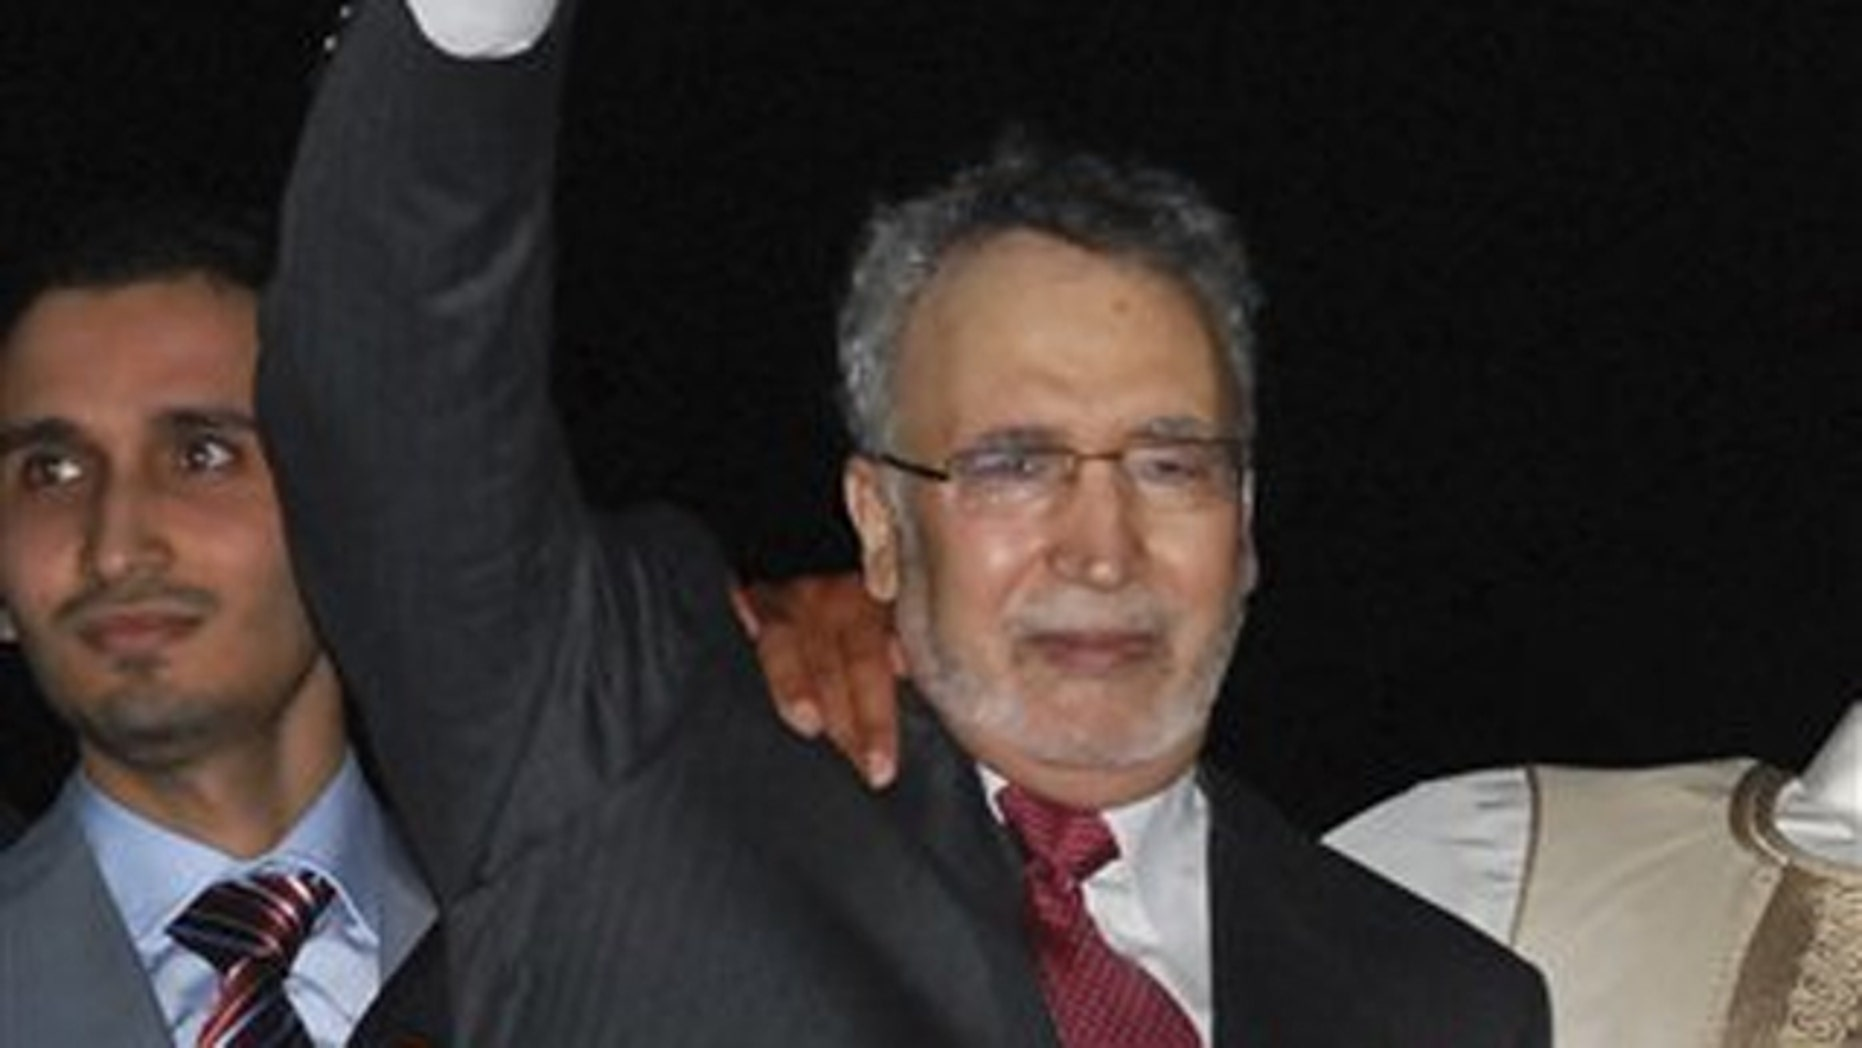 In this Aug. 20, 2009, file photo, Abdelbaset al-Megrahi gestures on his arrival at an airport in Tripoli, Libya.